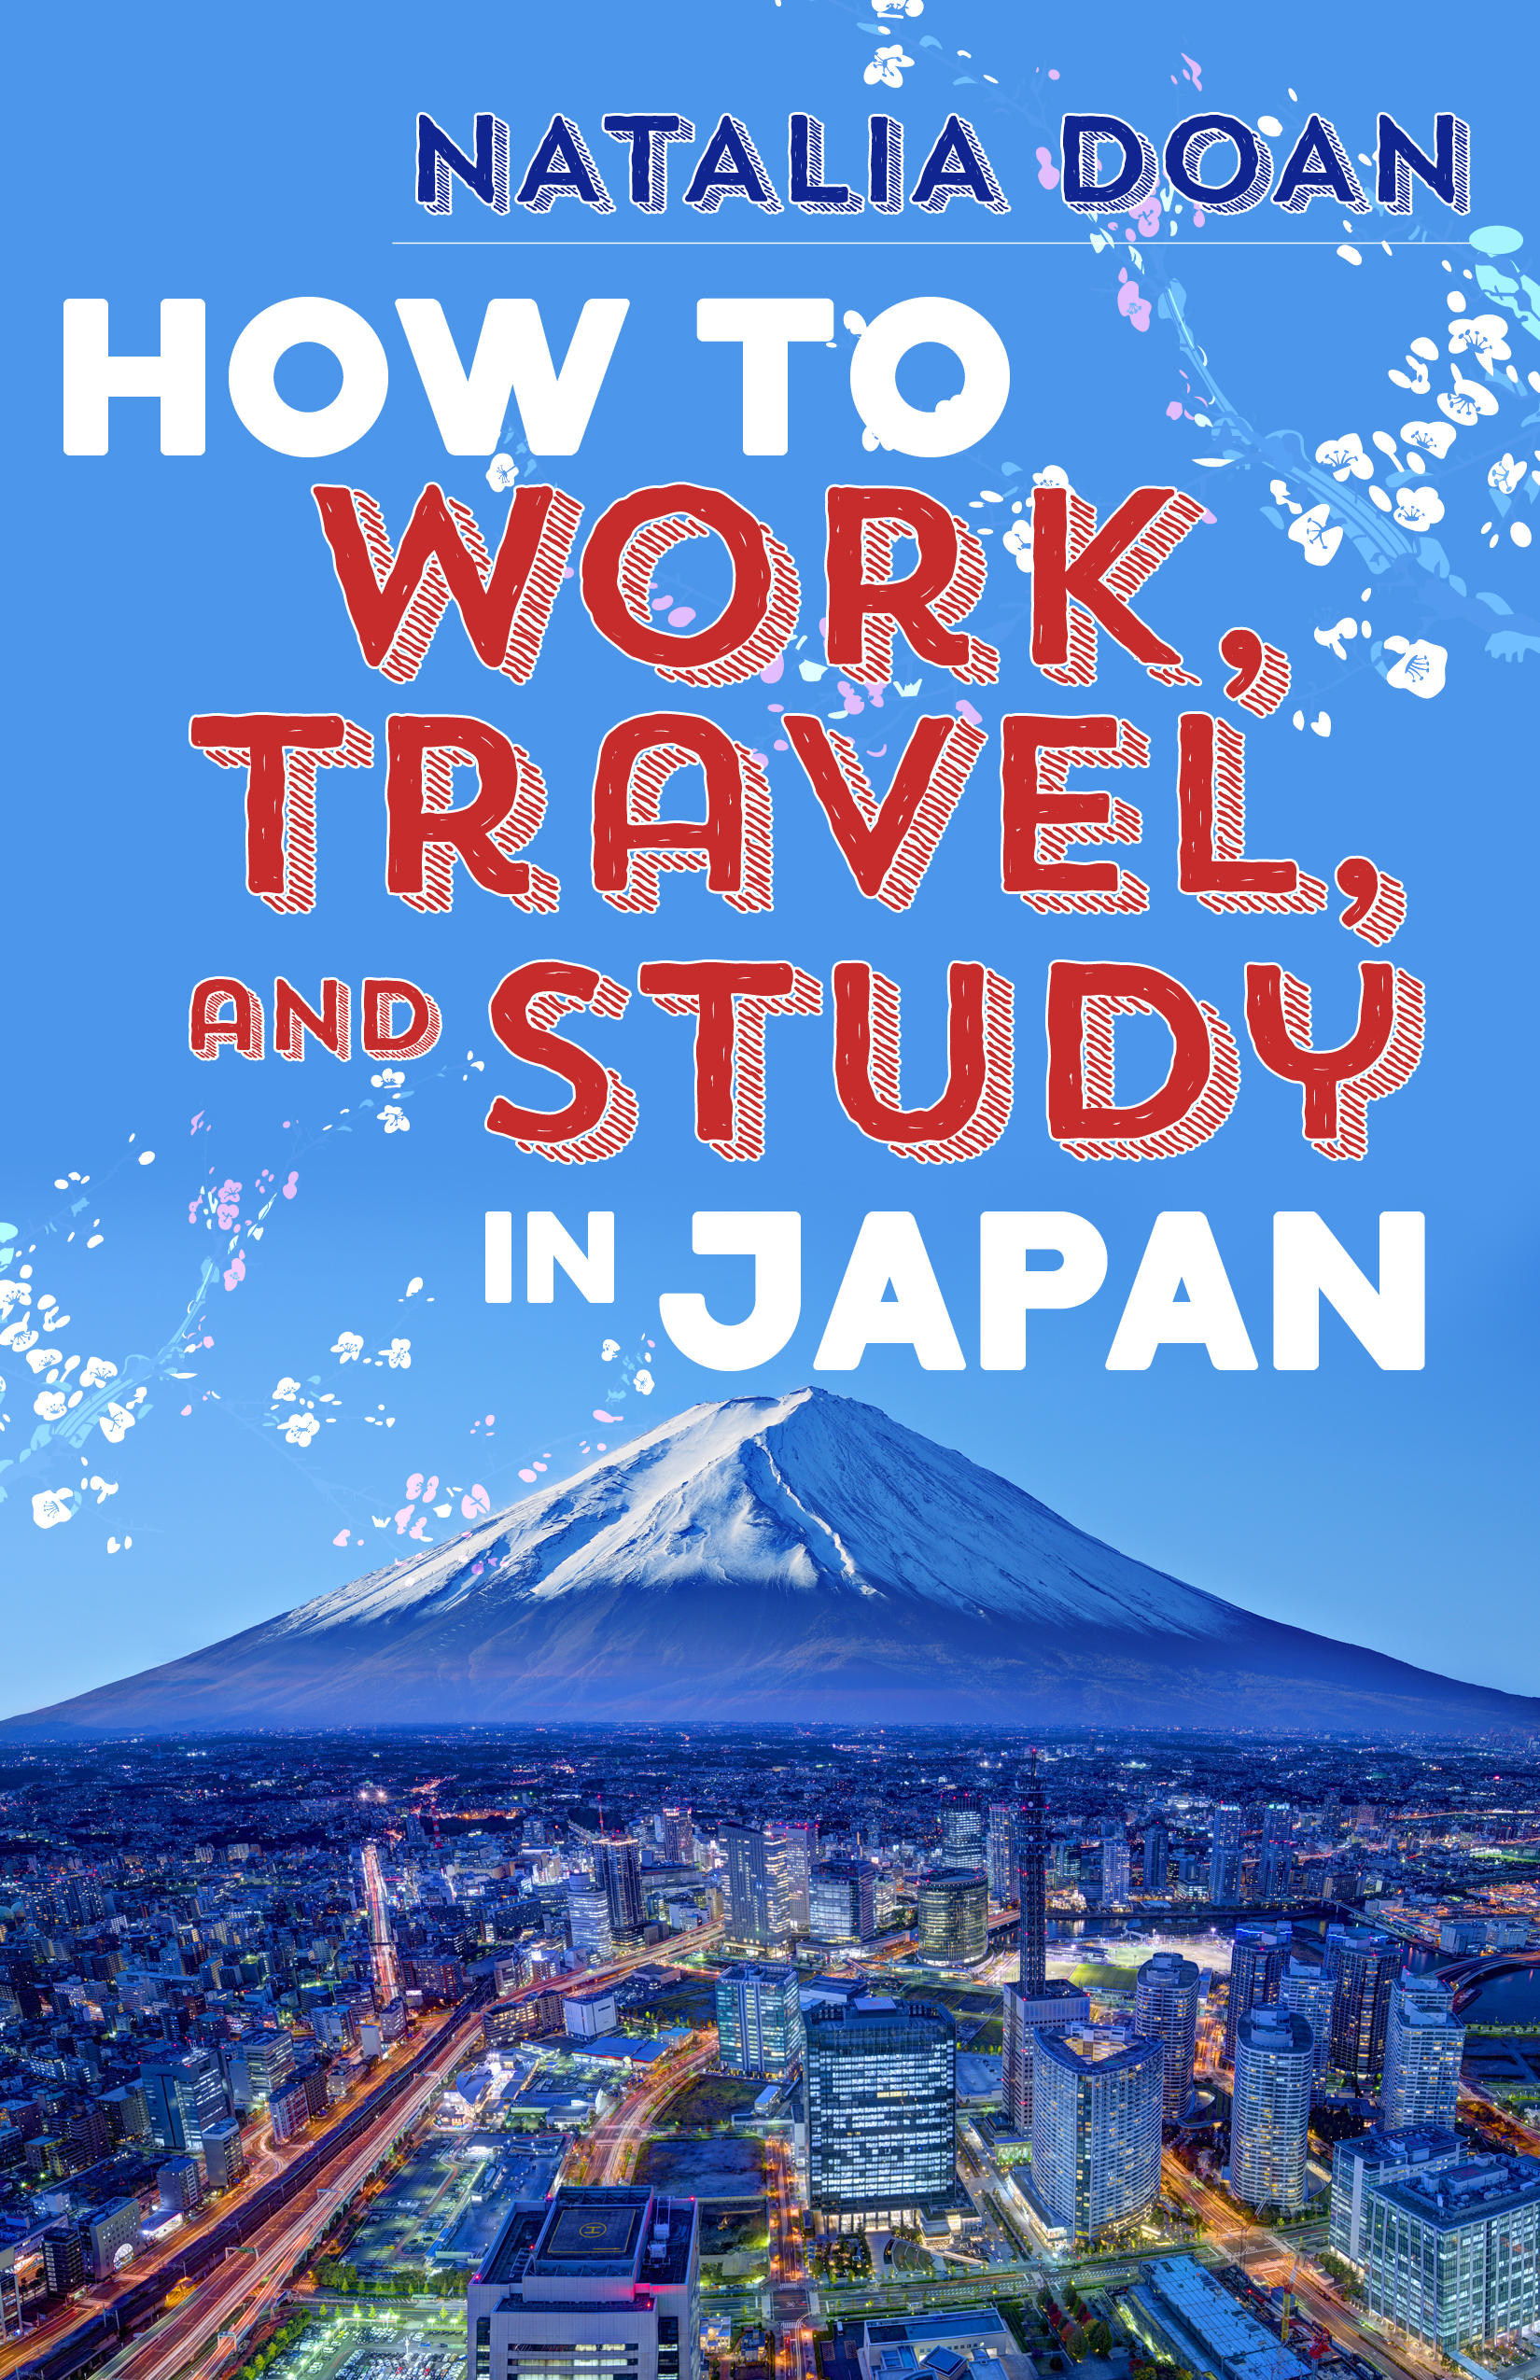 How to work, travel and study in Japan book cover